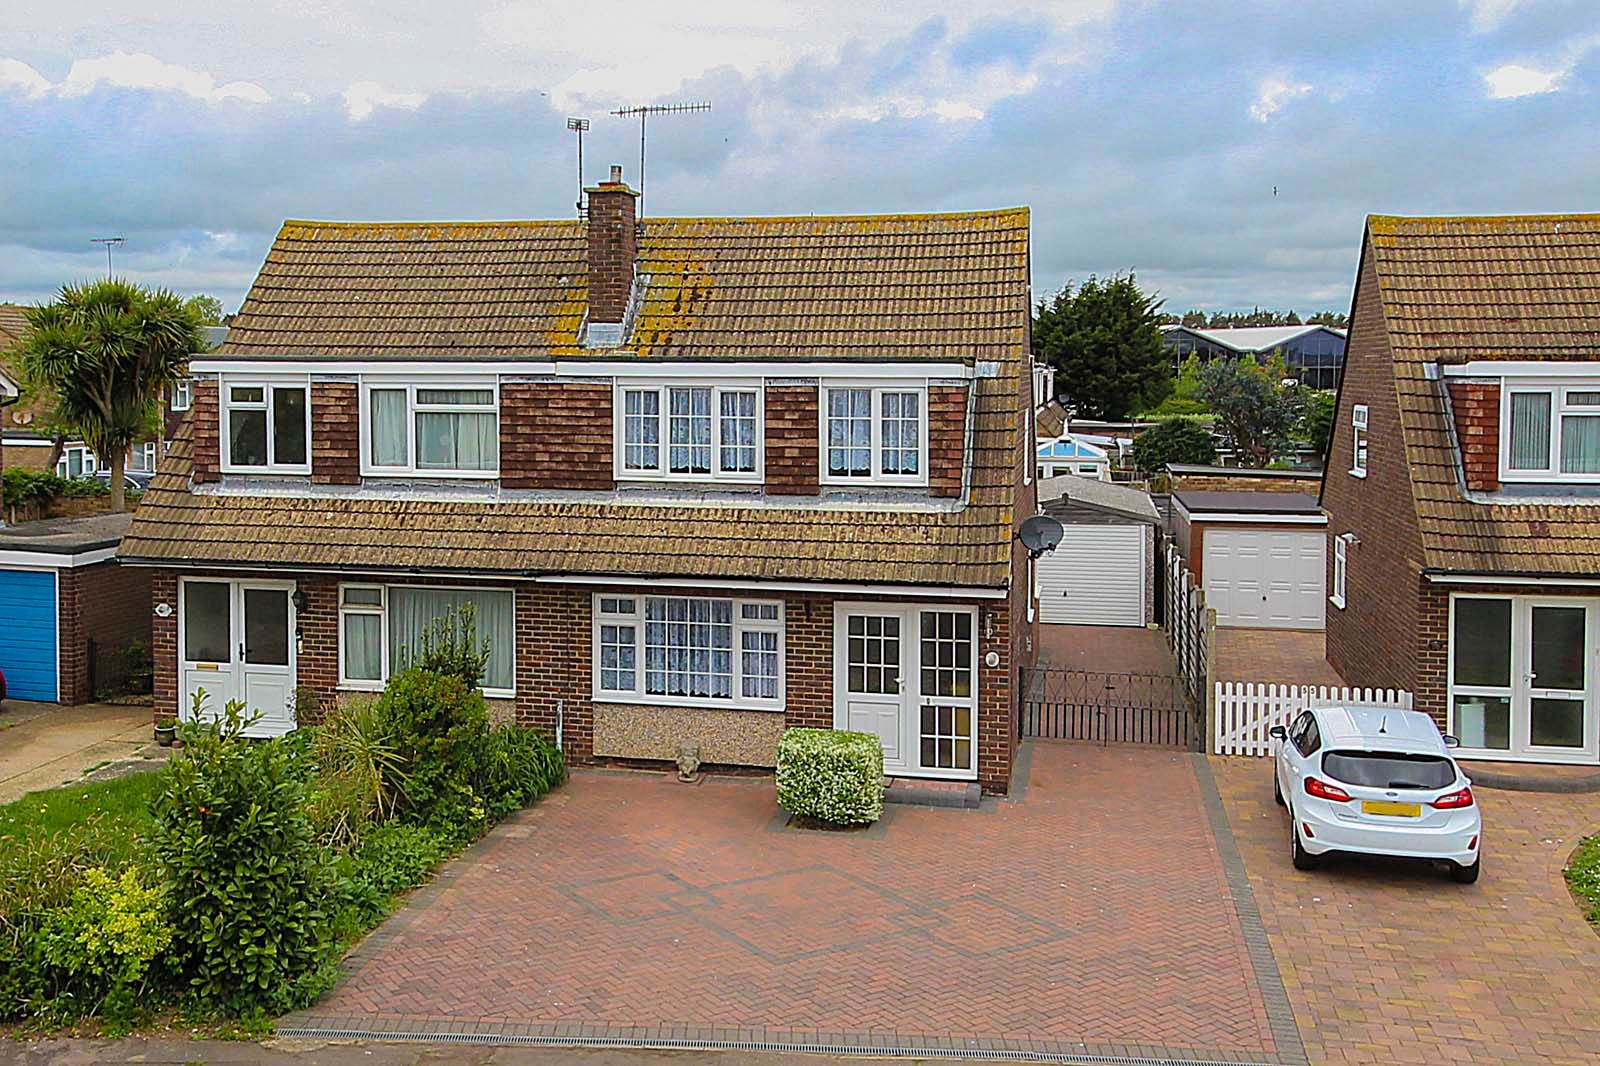 3 bed house for sale in Old Worthing Road - Property Image 1